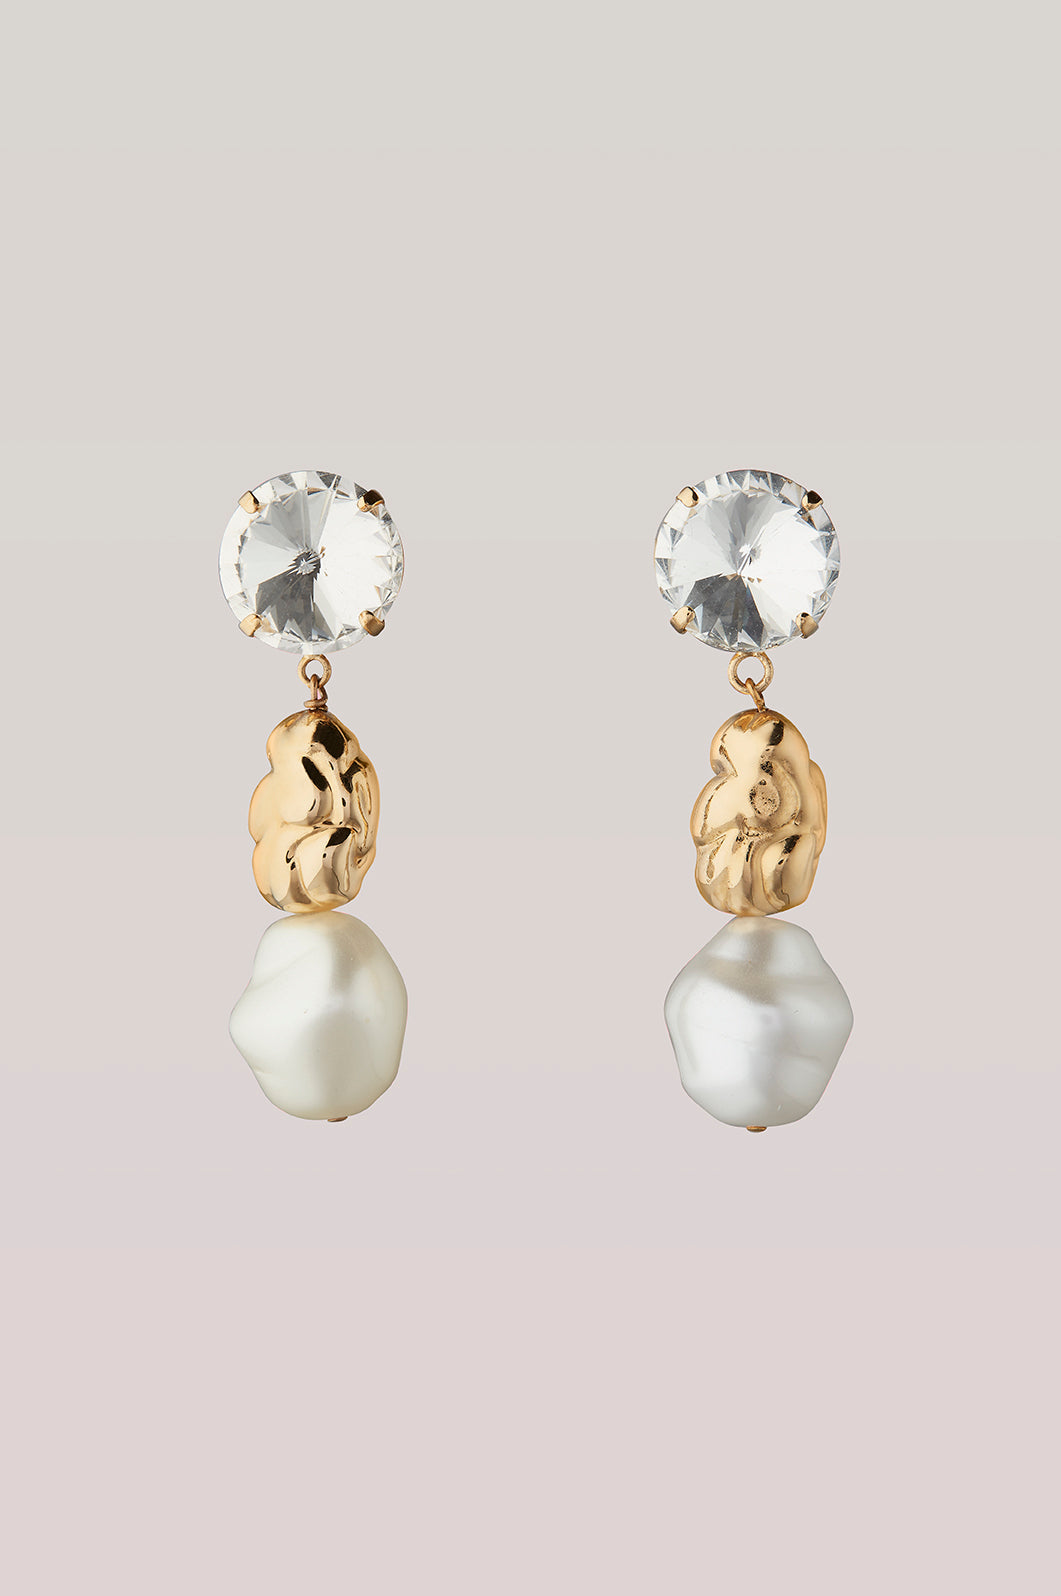 safsafu CHEWING GUM GOLD EARRINGS Safsafu